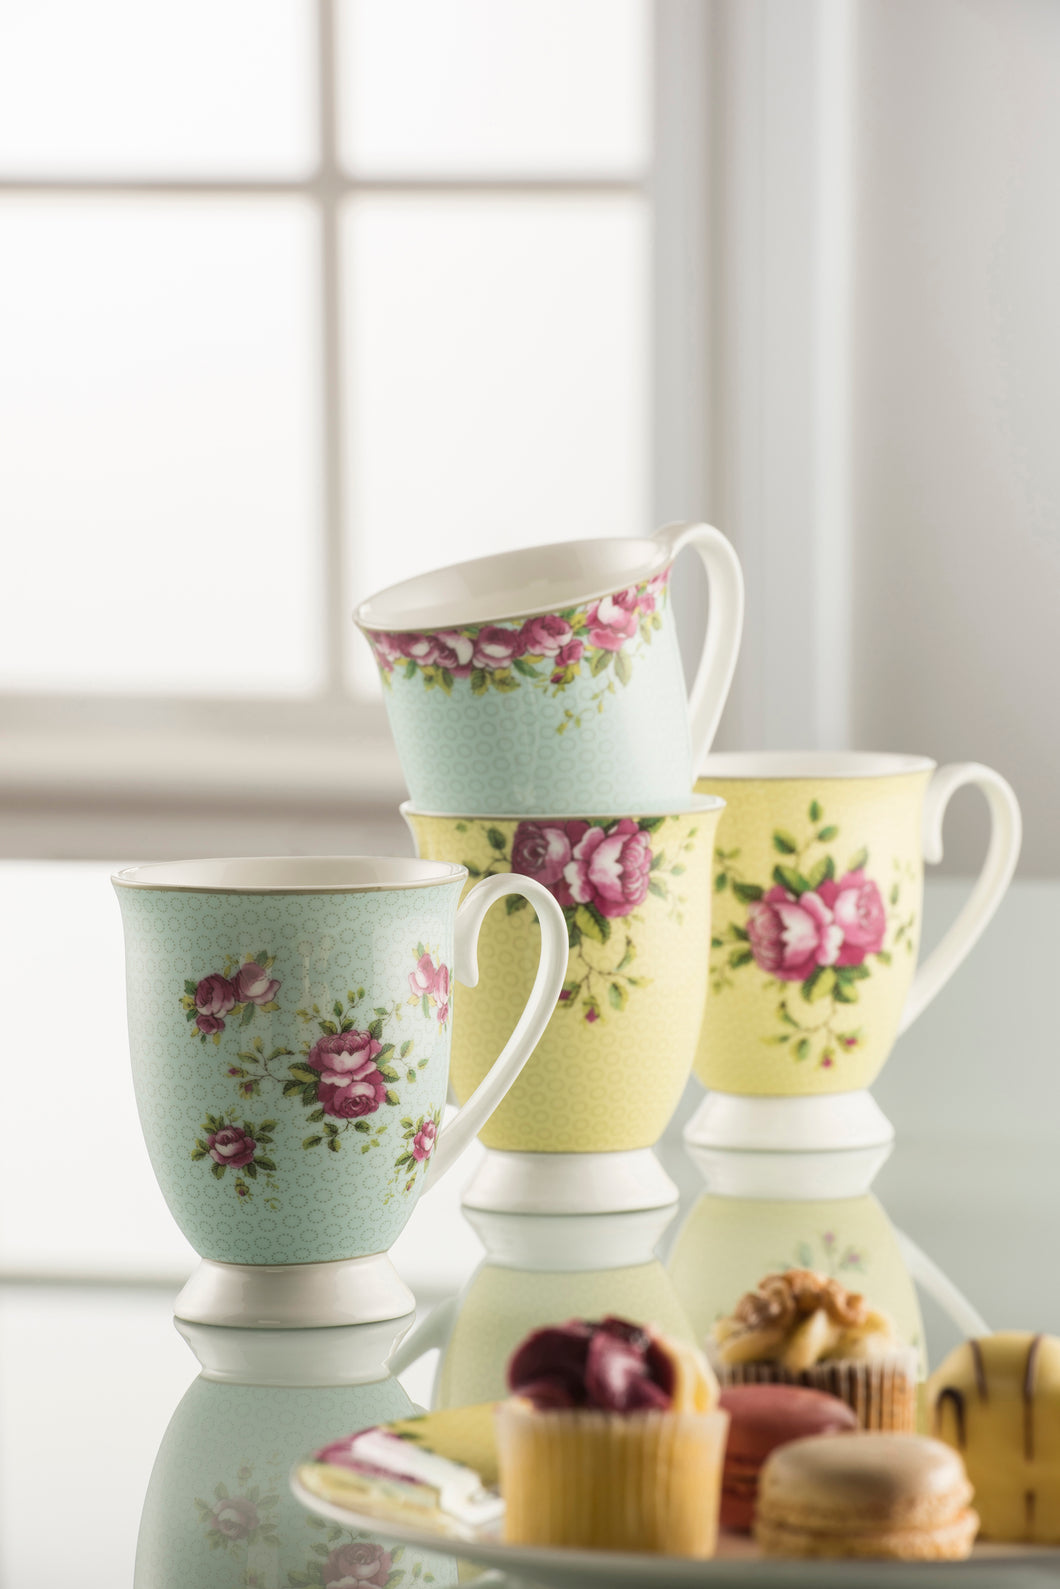 Anysley - Rose Collection Lemon & Mint Green Mugs in a Gift Box